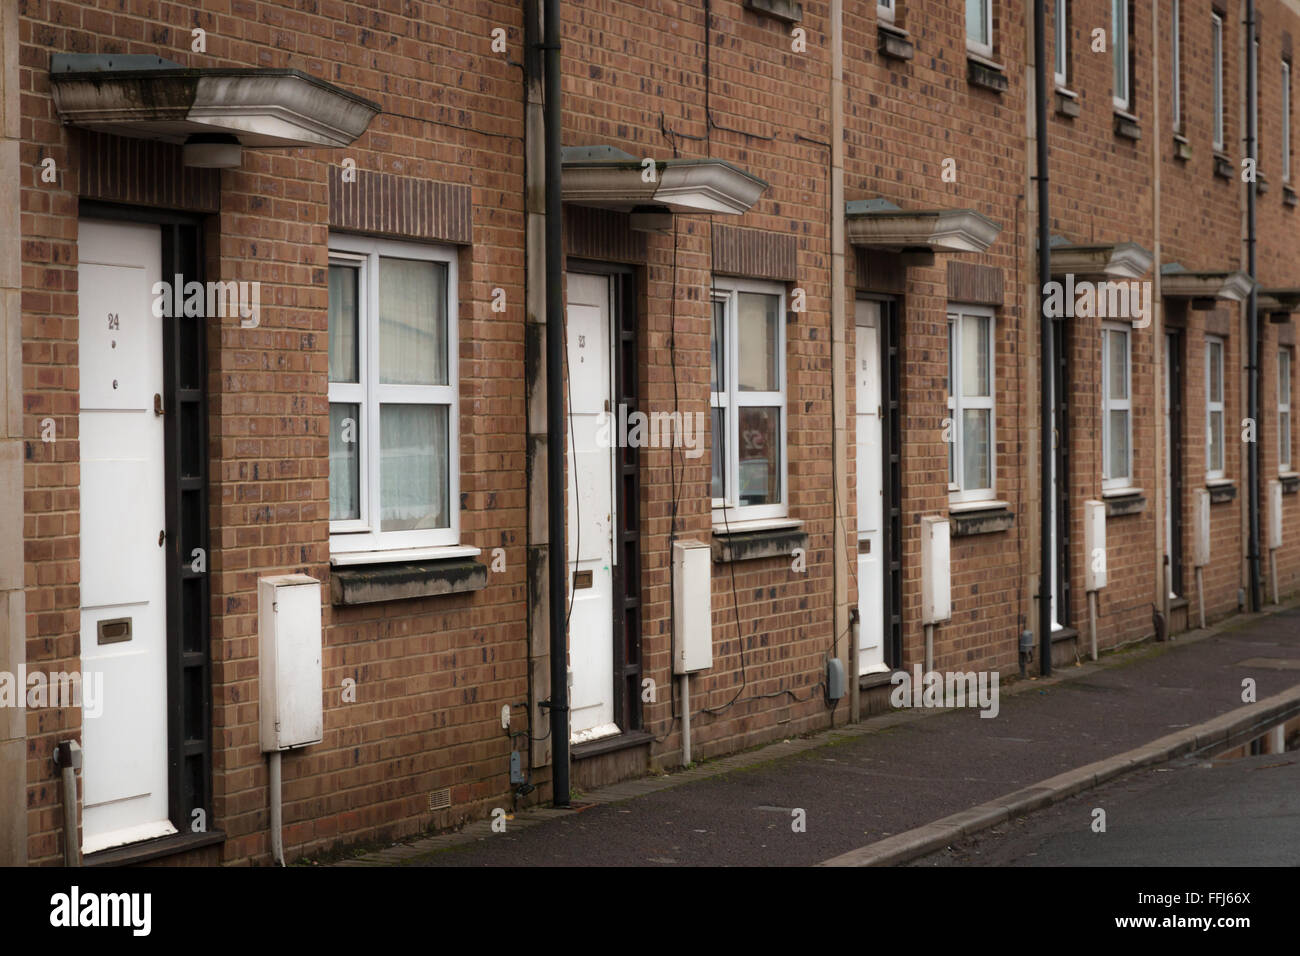 A row of identical terraced housing on a street in South West England, UK - Stock Image